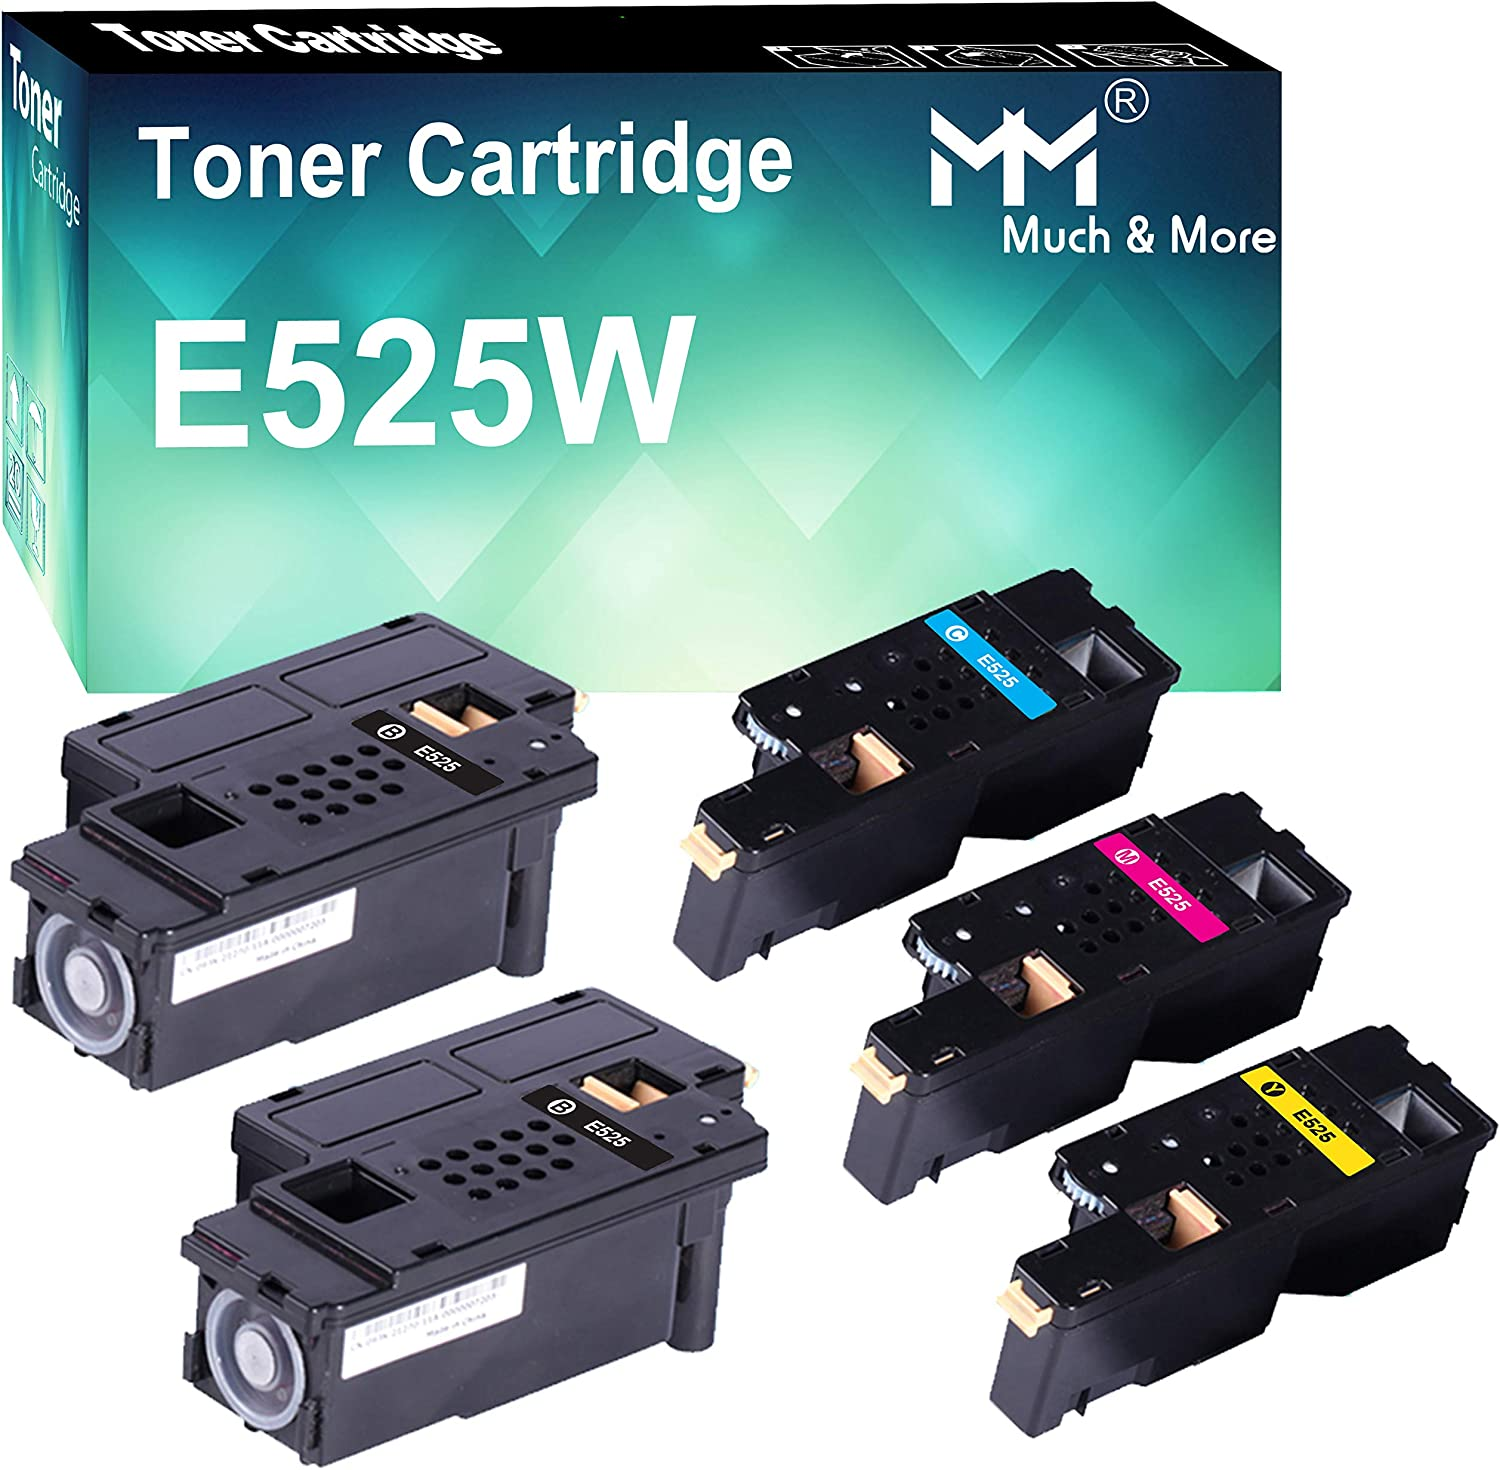 (5-Pack, 2X K+C+M+Y) Compatible Toner Cartridge Replacement for Dell E525W E525 Dell E525W Wireless Color Laser Printer for 593-BBJX 593-BBJU 593-BBJV 593-BBJW, by MuchMore